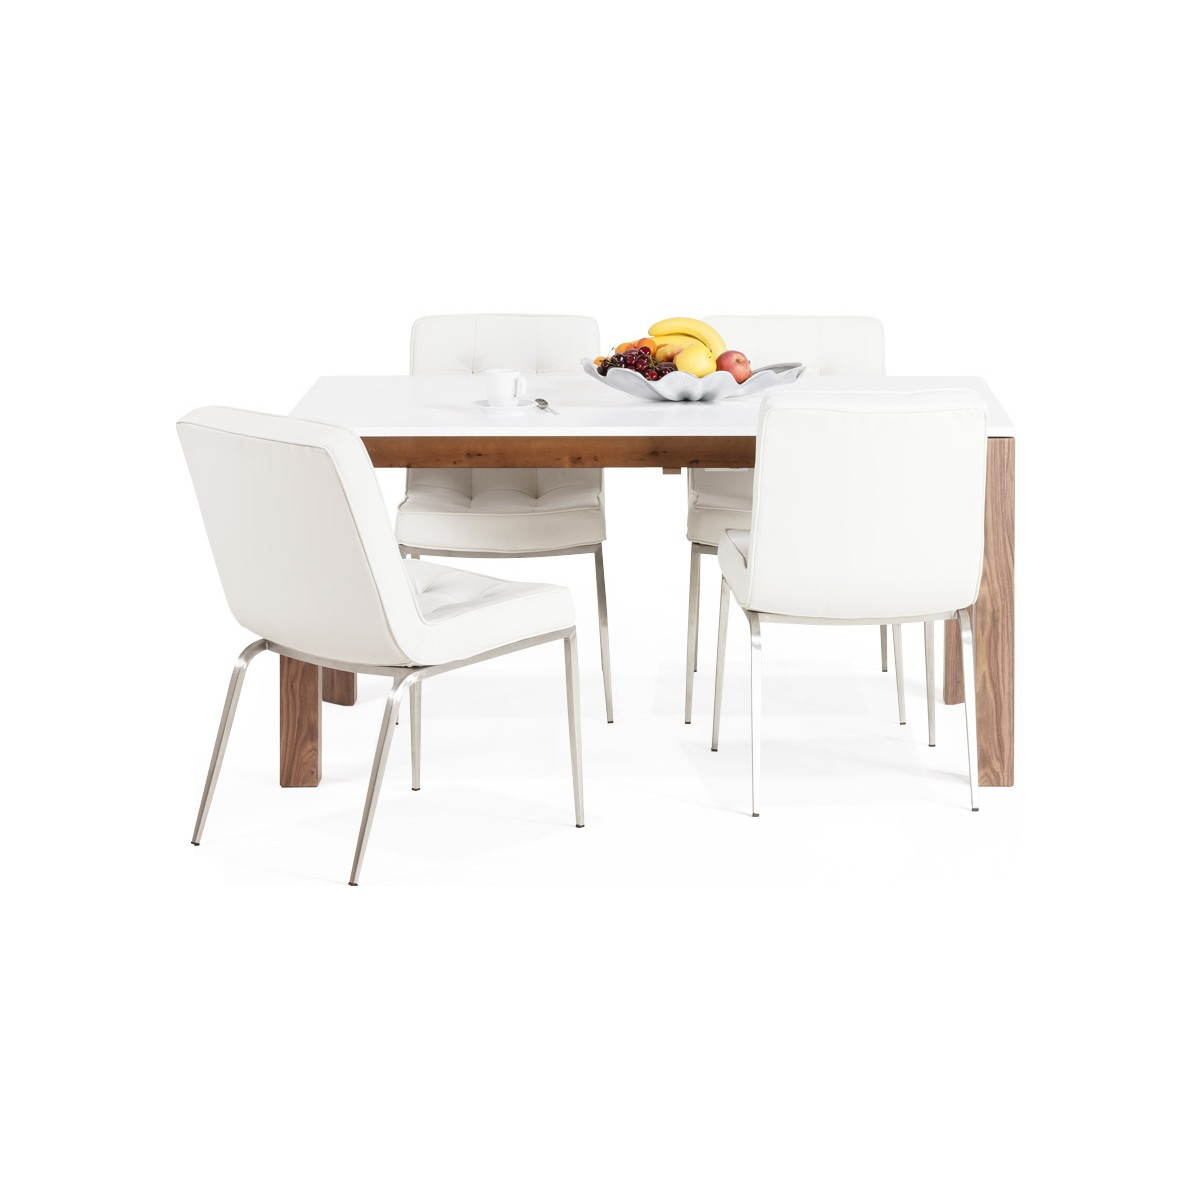 Table bois rallonge ikea for Table design a rallonge